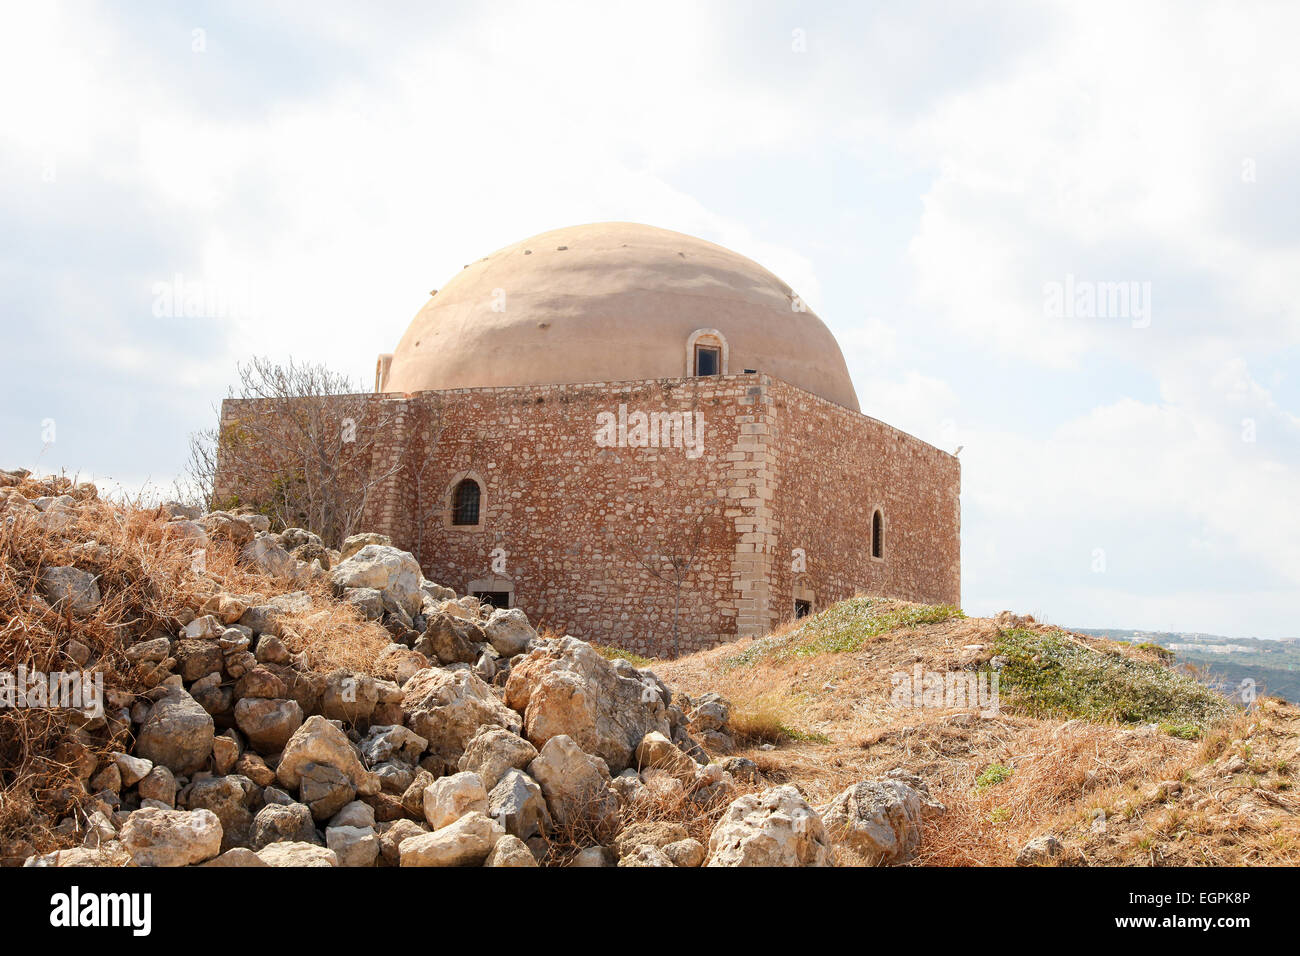 Venetian Fortezza or Citadel in the city of Rethymno on the island of Crete, Greece, created in 1573. Stock Photo